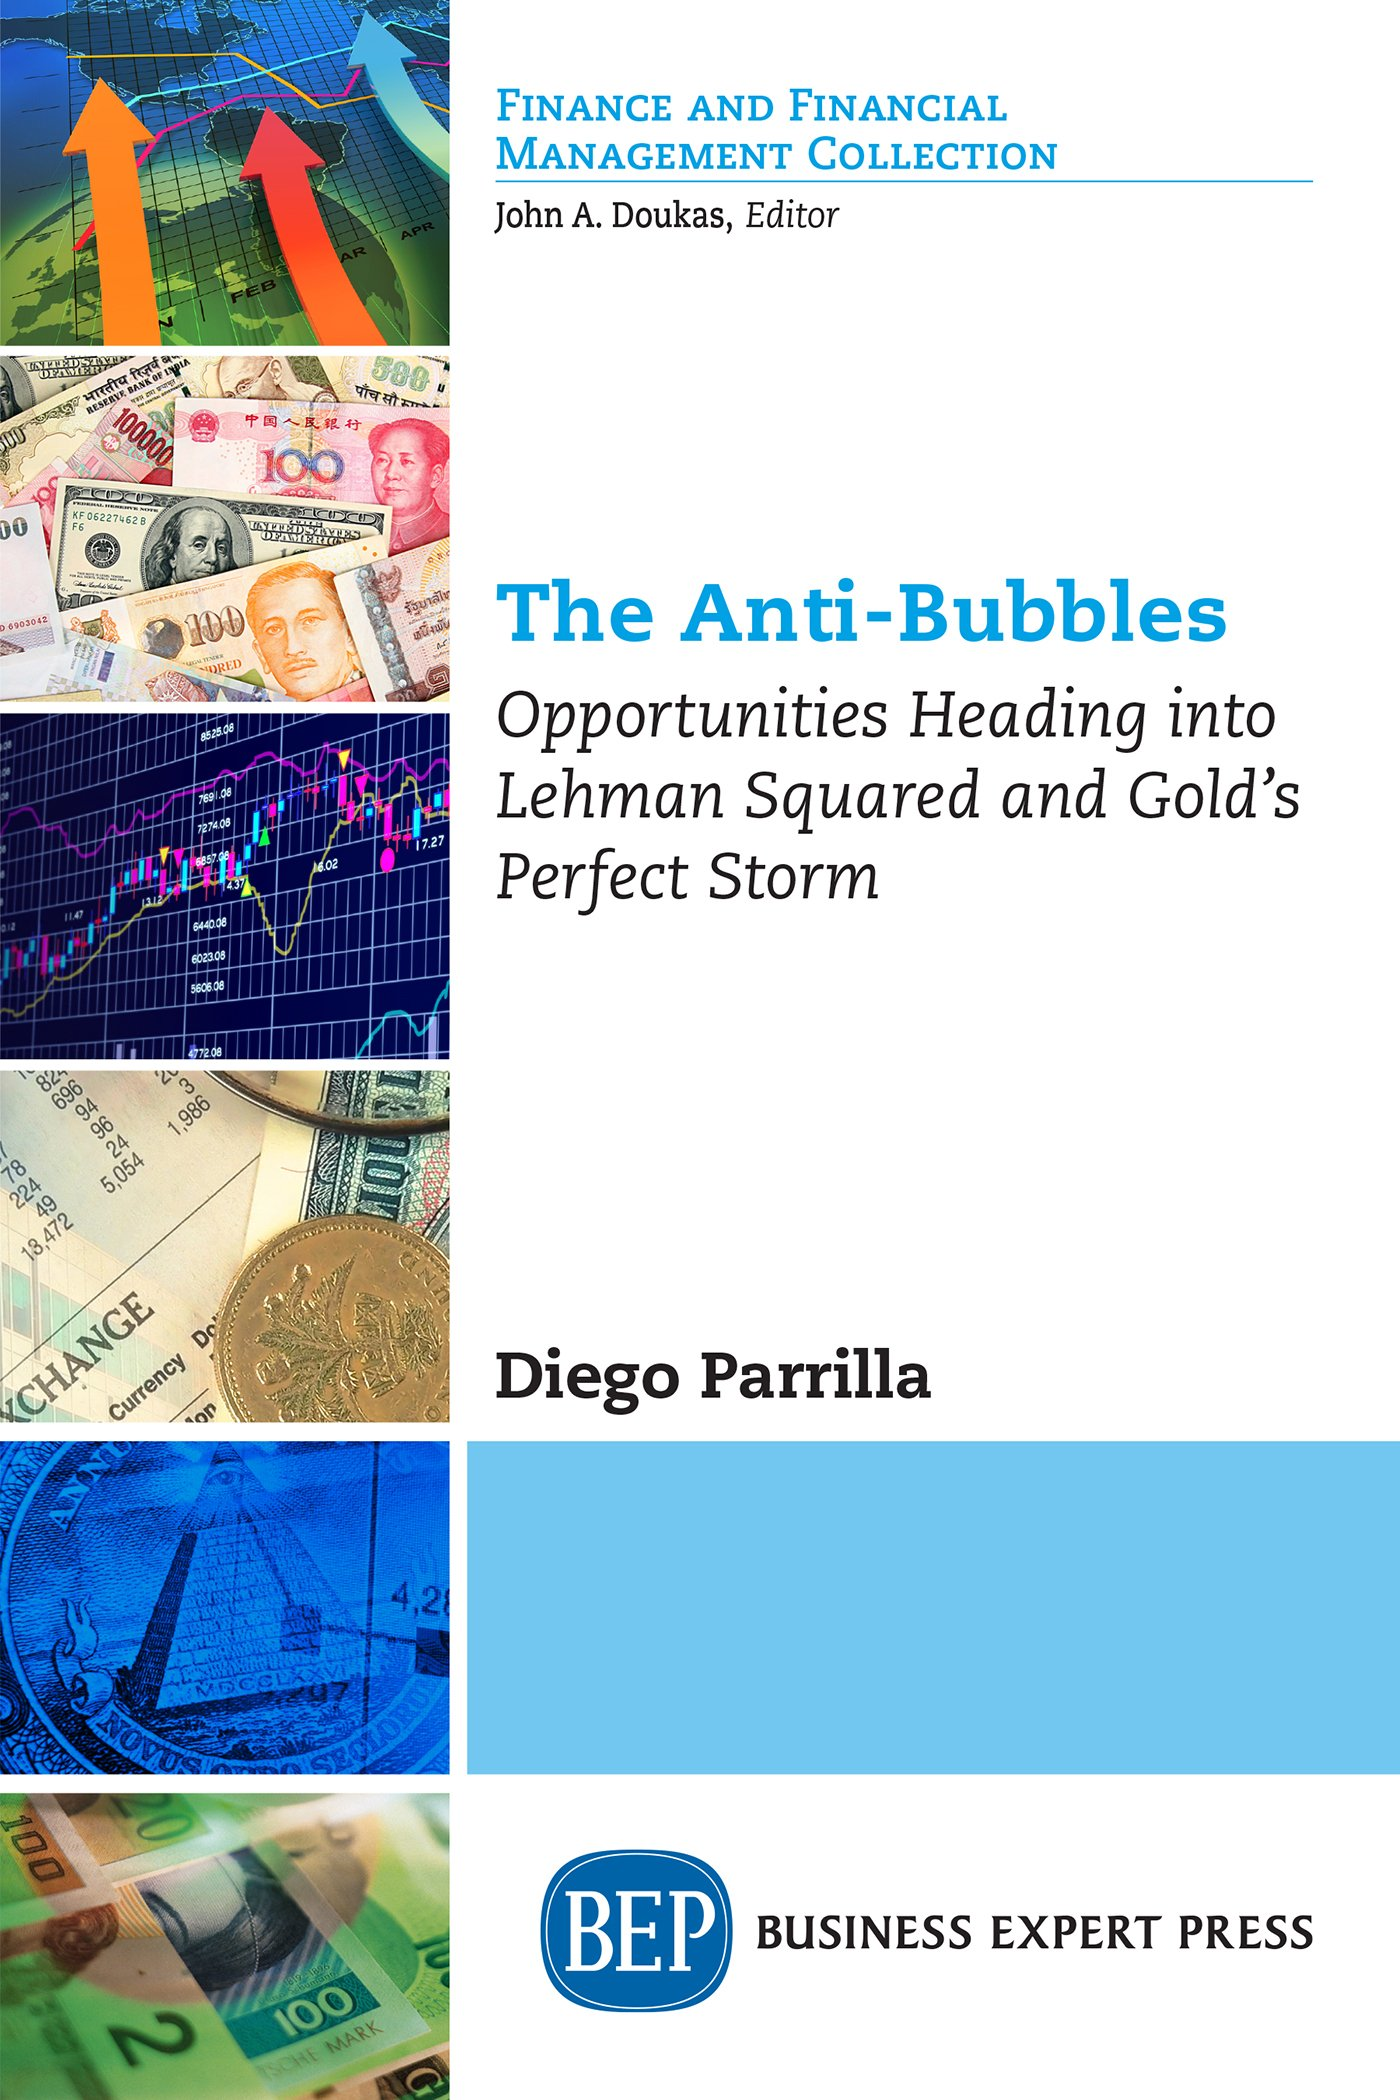 The Anti-Bubbles: Opportunities Heading into Lehman Squared and Gold's Perfect Storm (Finance and Financial Management Collection)